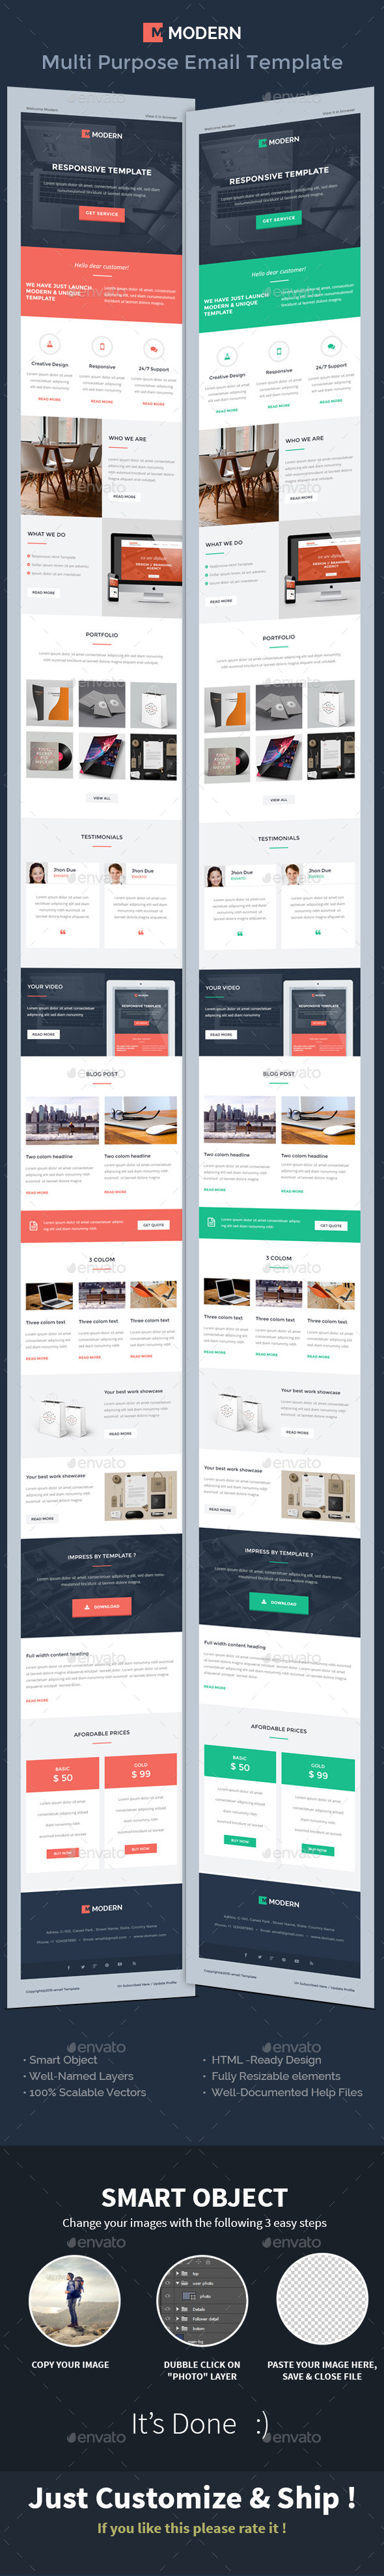 MODERN Responsive Multipurpose e-Mail Template